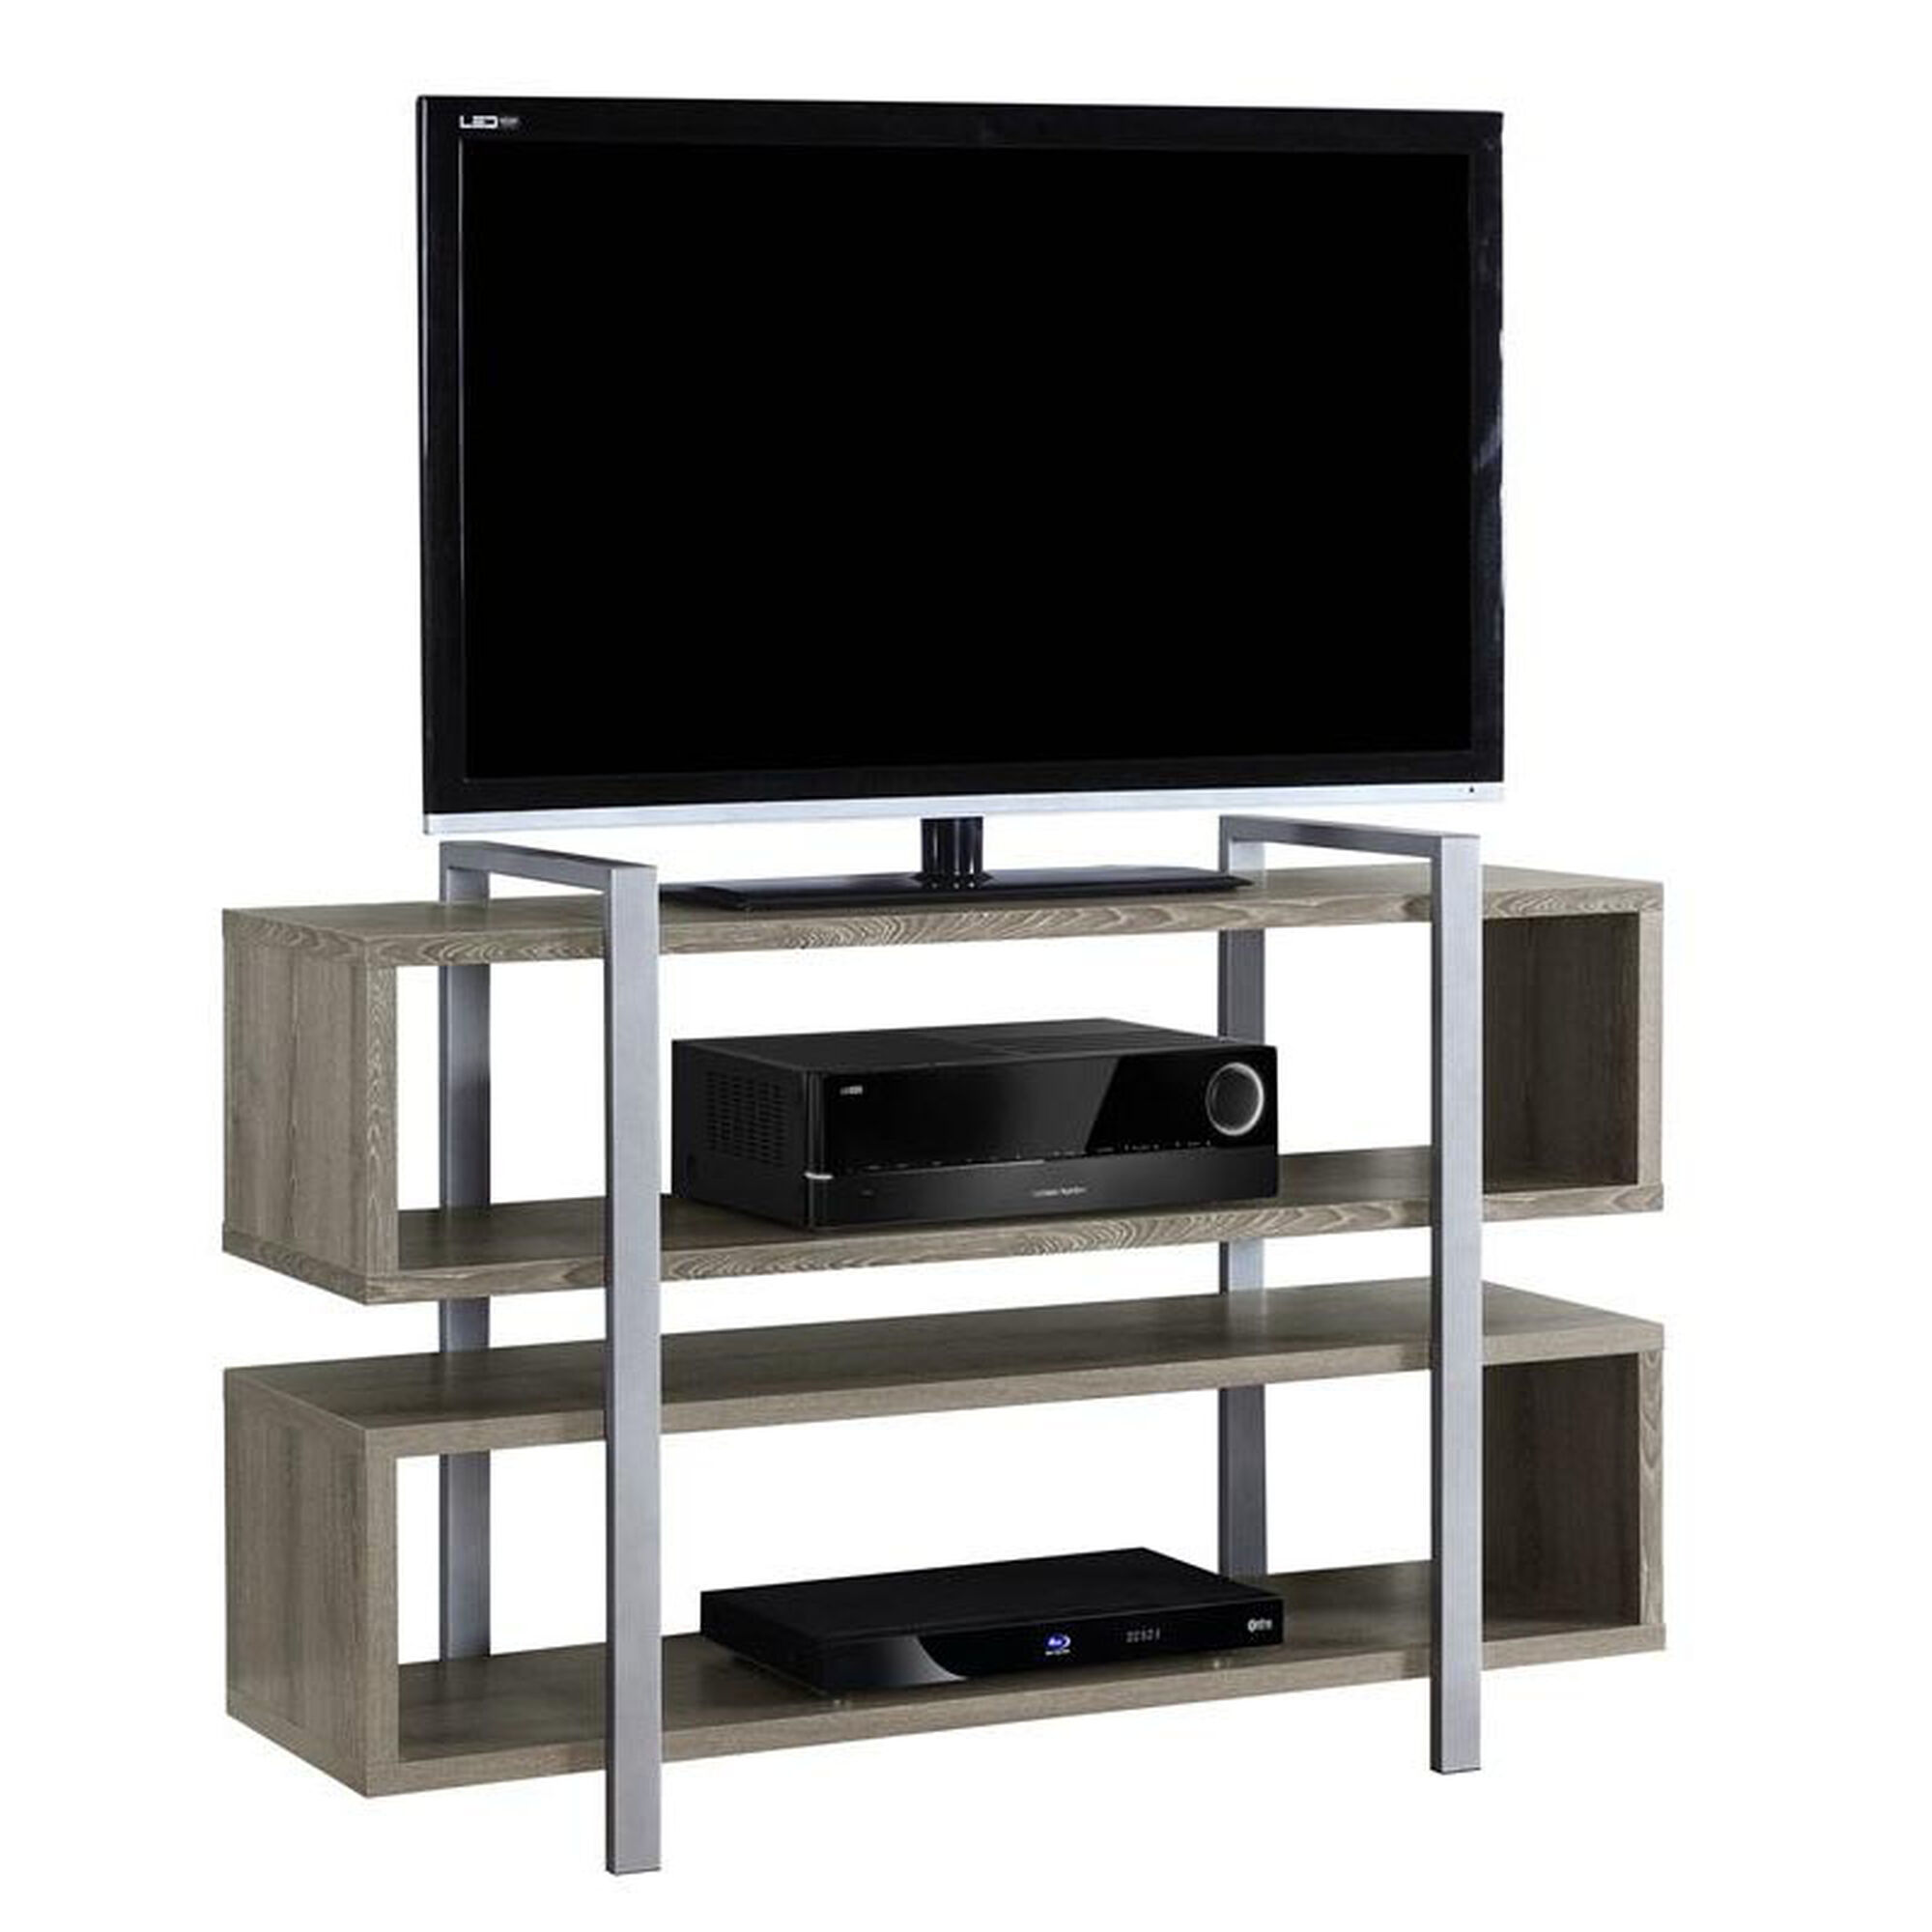 Monarch specialties open concept 32 39 39 h bookcase tv stand for Open concept bookcase